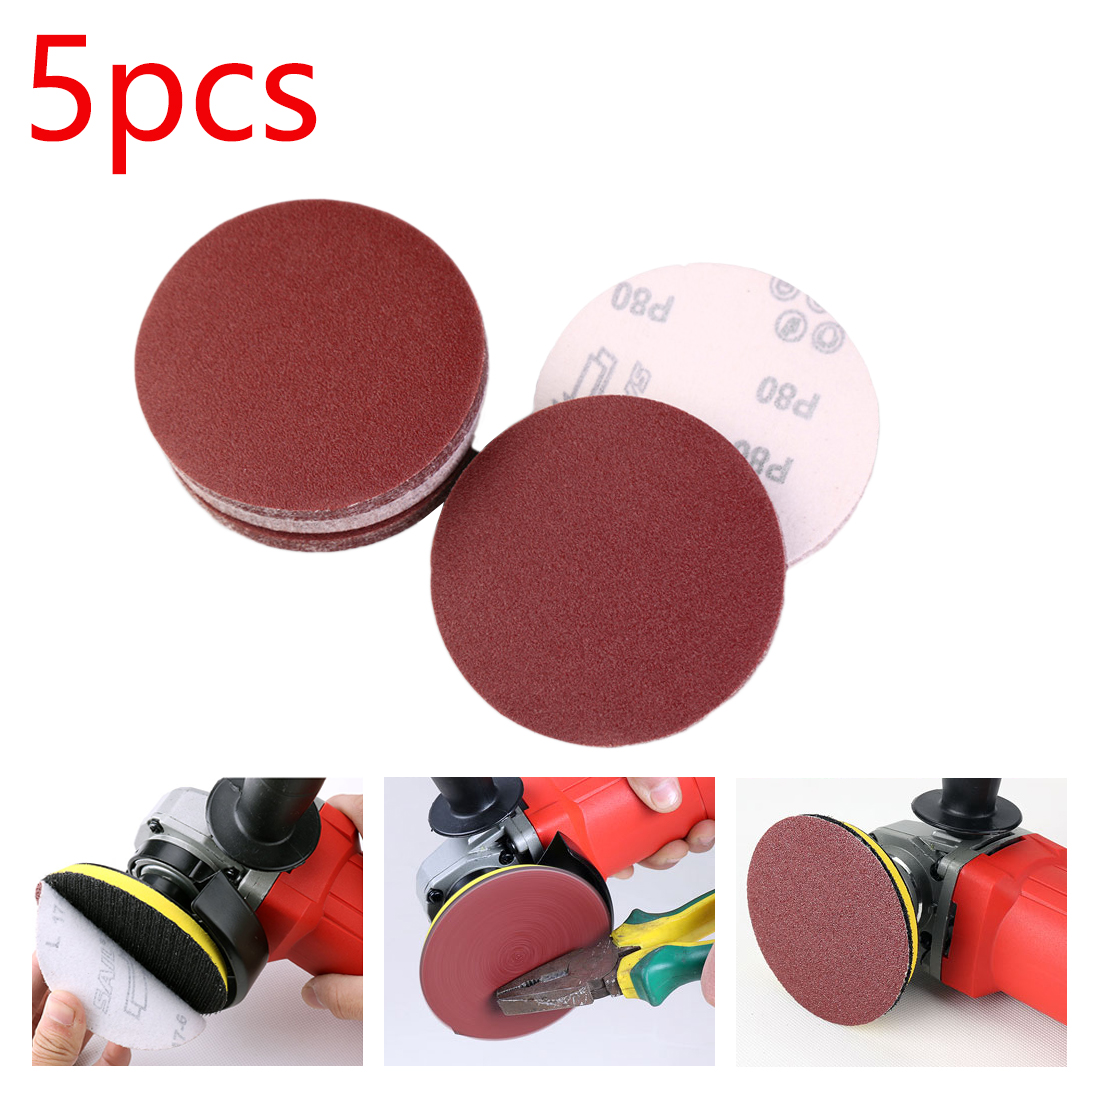 Low Price 5pcs 125 Mm Round Sandpaper Disk Sand Sheets Grit 80-1000 Hook Loop Sanding Disc For Sander Grits Red Polishing Discs